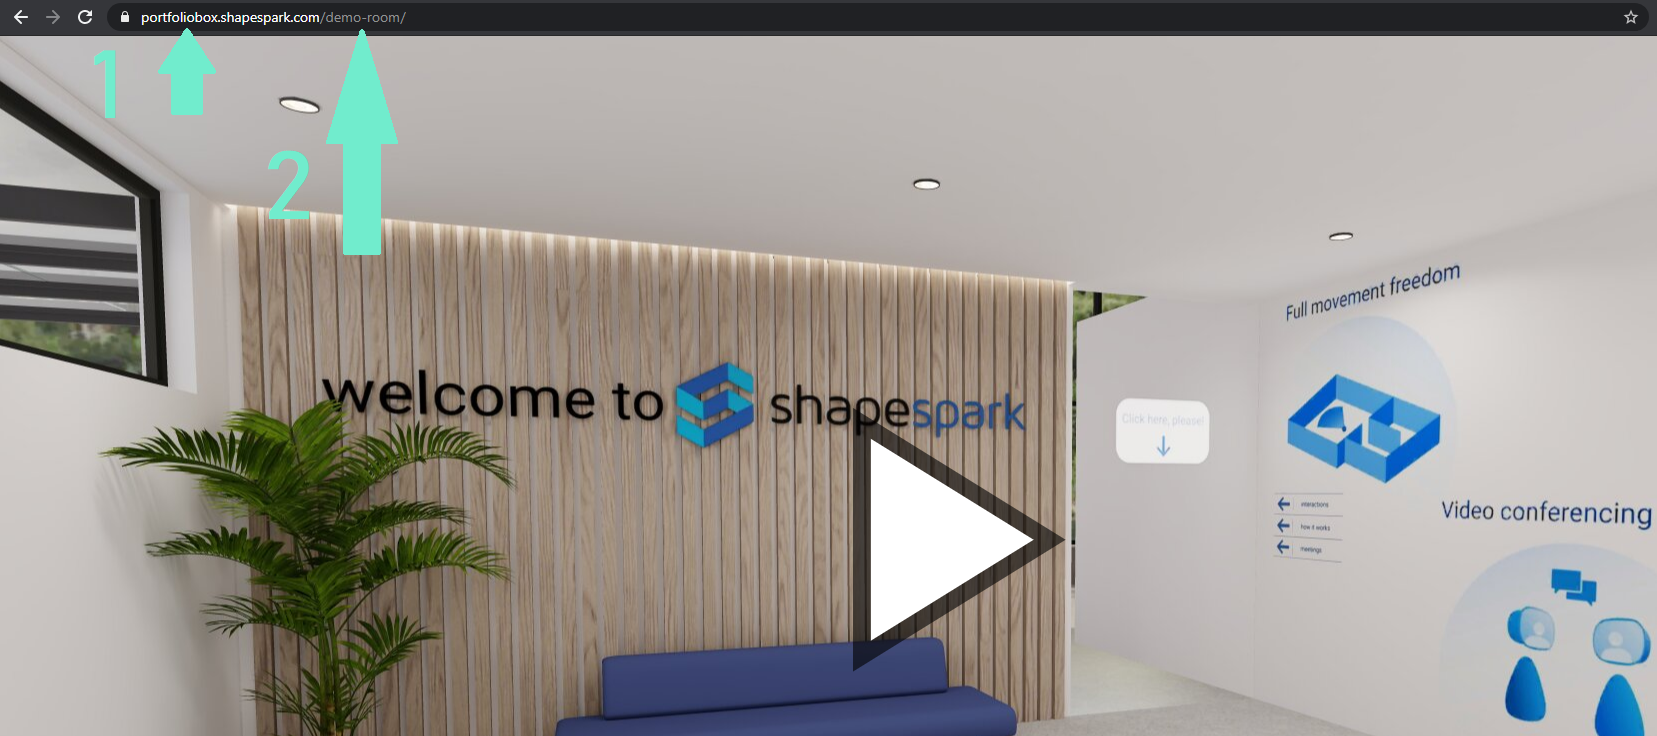 Get the username and scene name from ShapeSpark